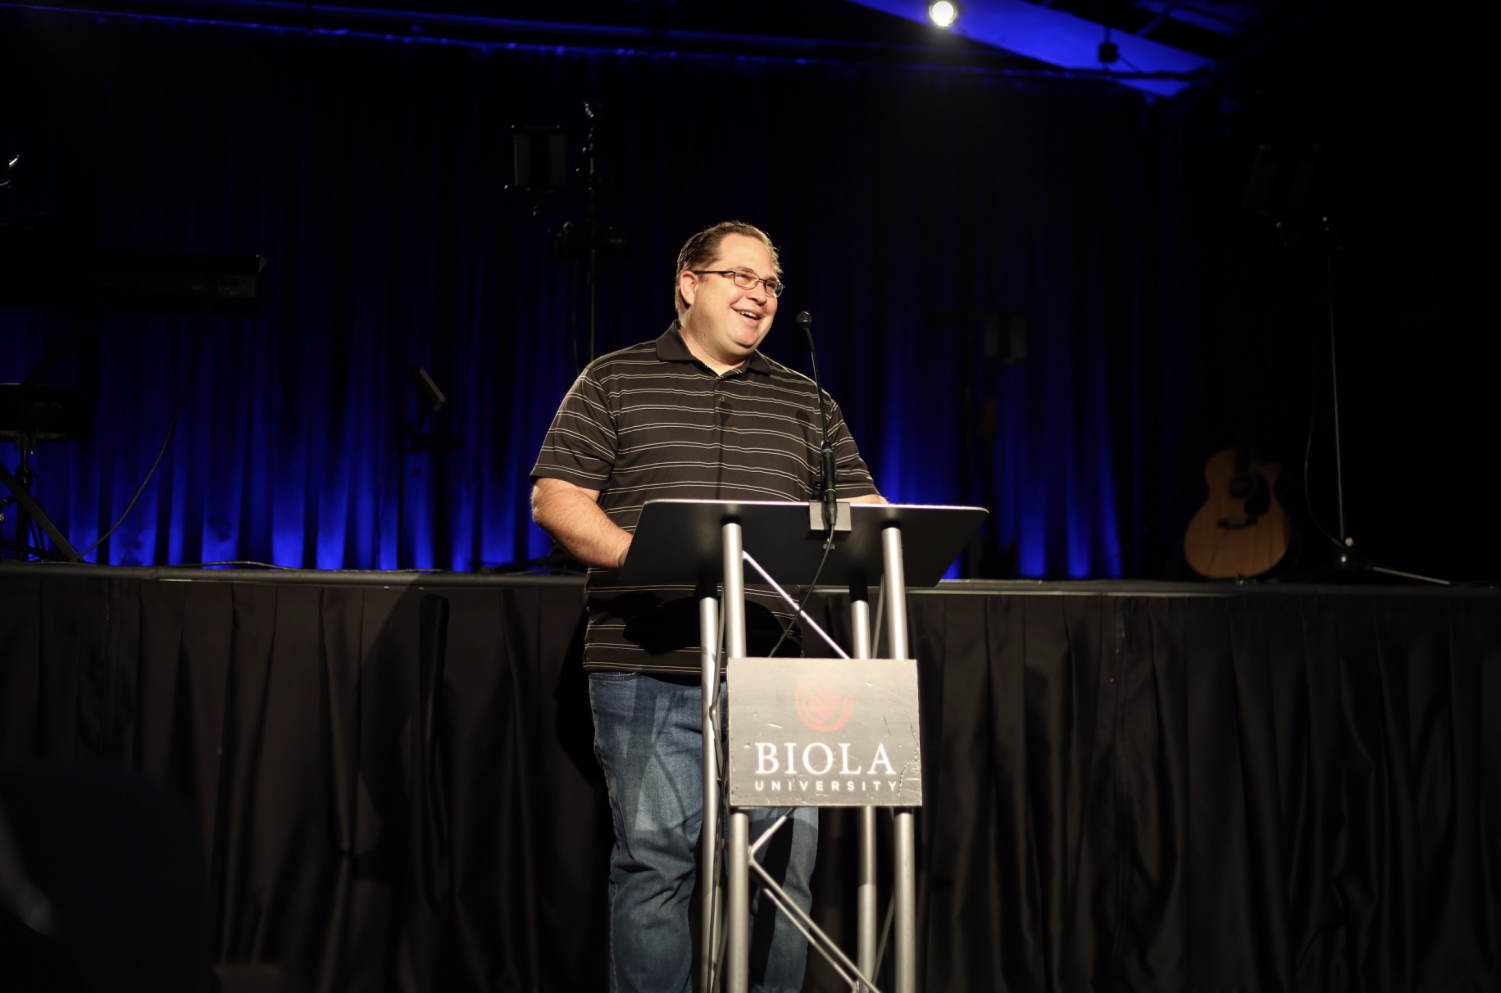 Pastoral care and counseling major Joshua Fouch shares his testimony.